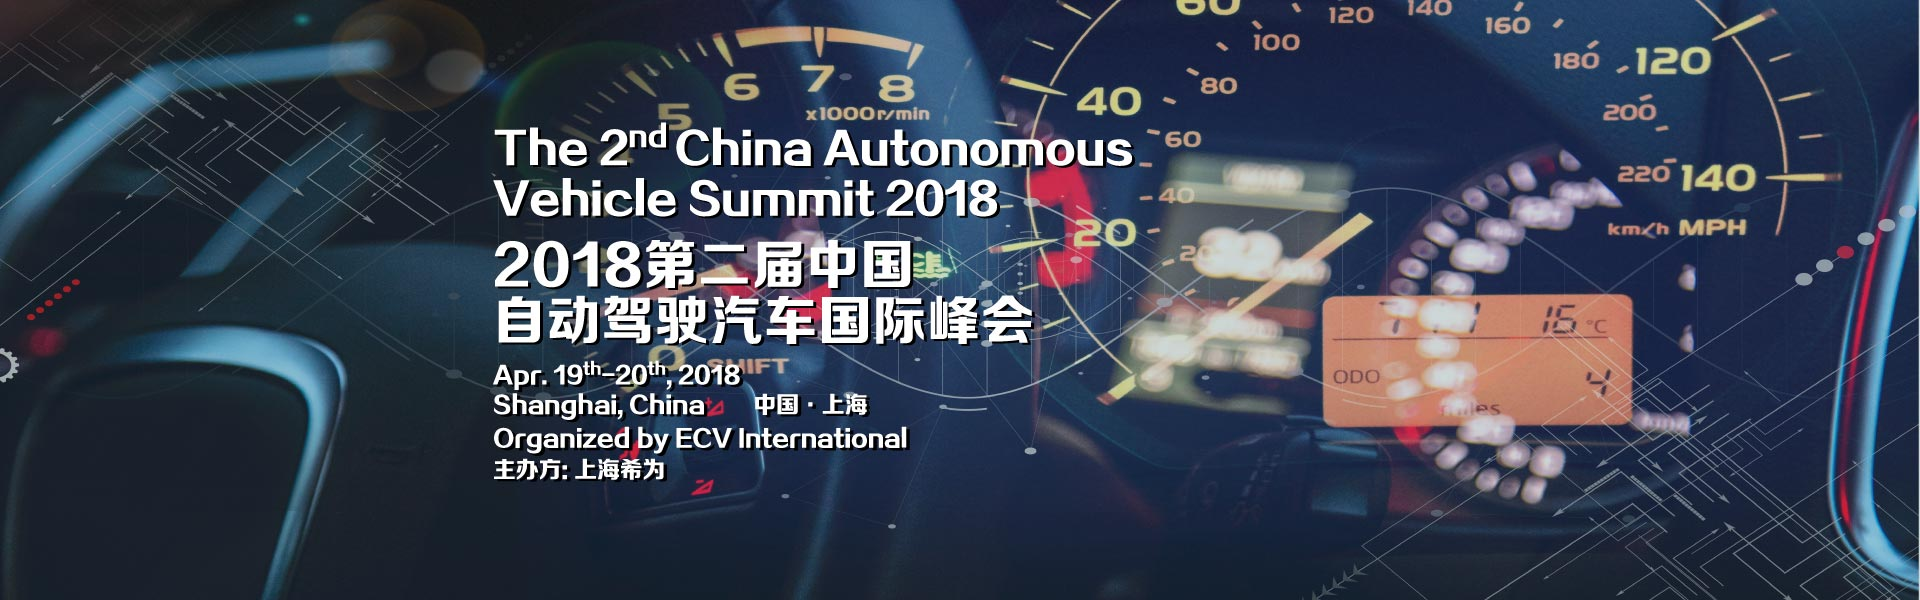 The 2nd China Autonomous Vehicle Summit 2018